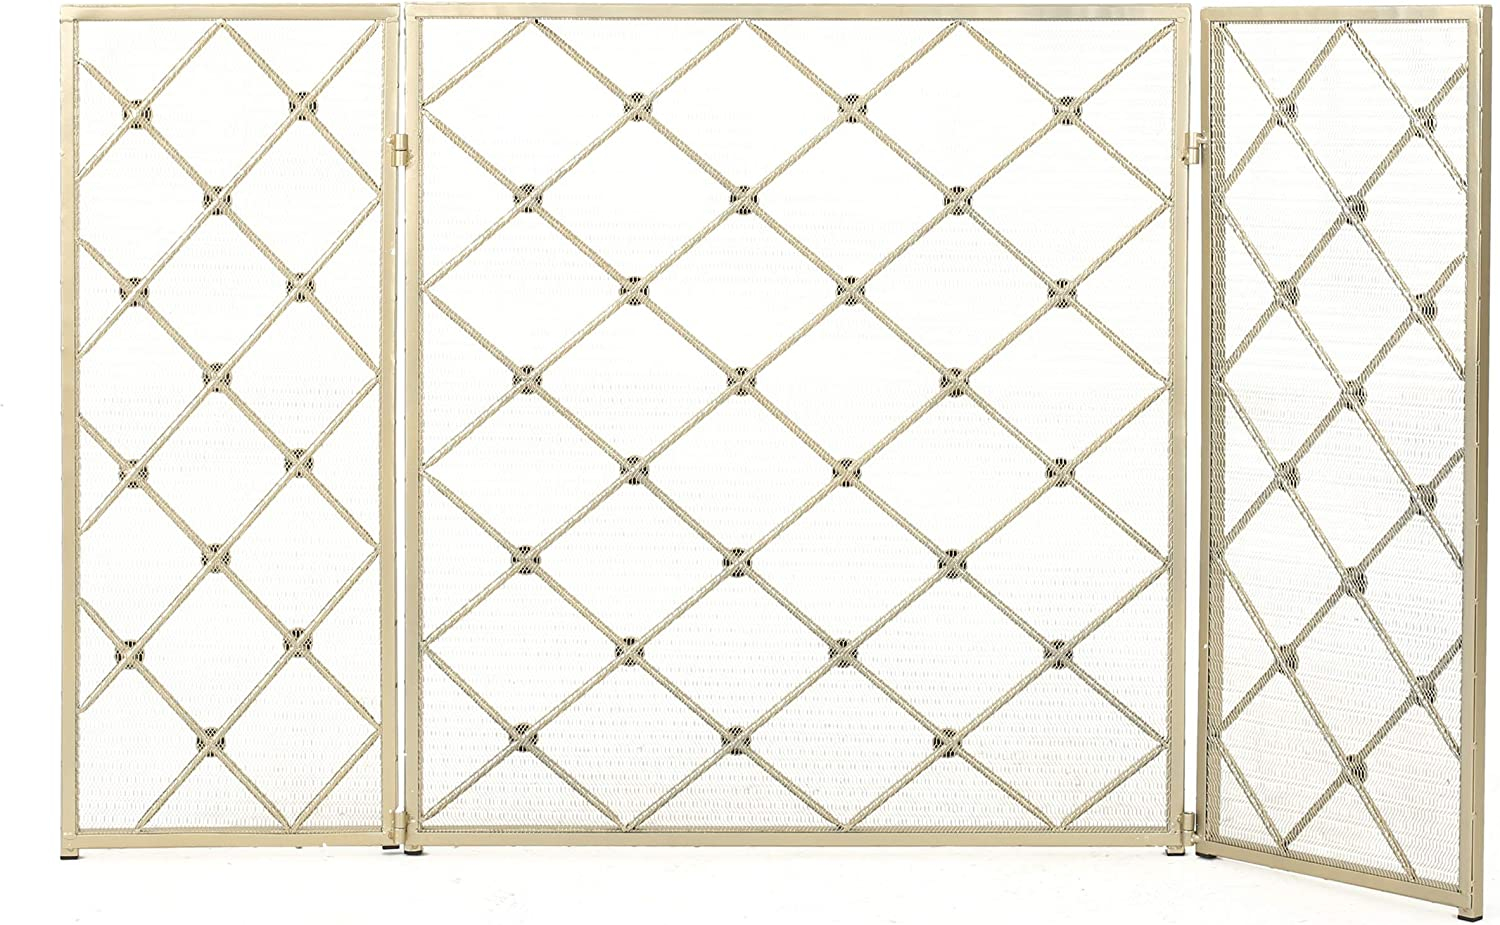 Christopher Knight Home Chelsey 3 Panelled Iron Fireplace Screen, Gold